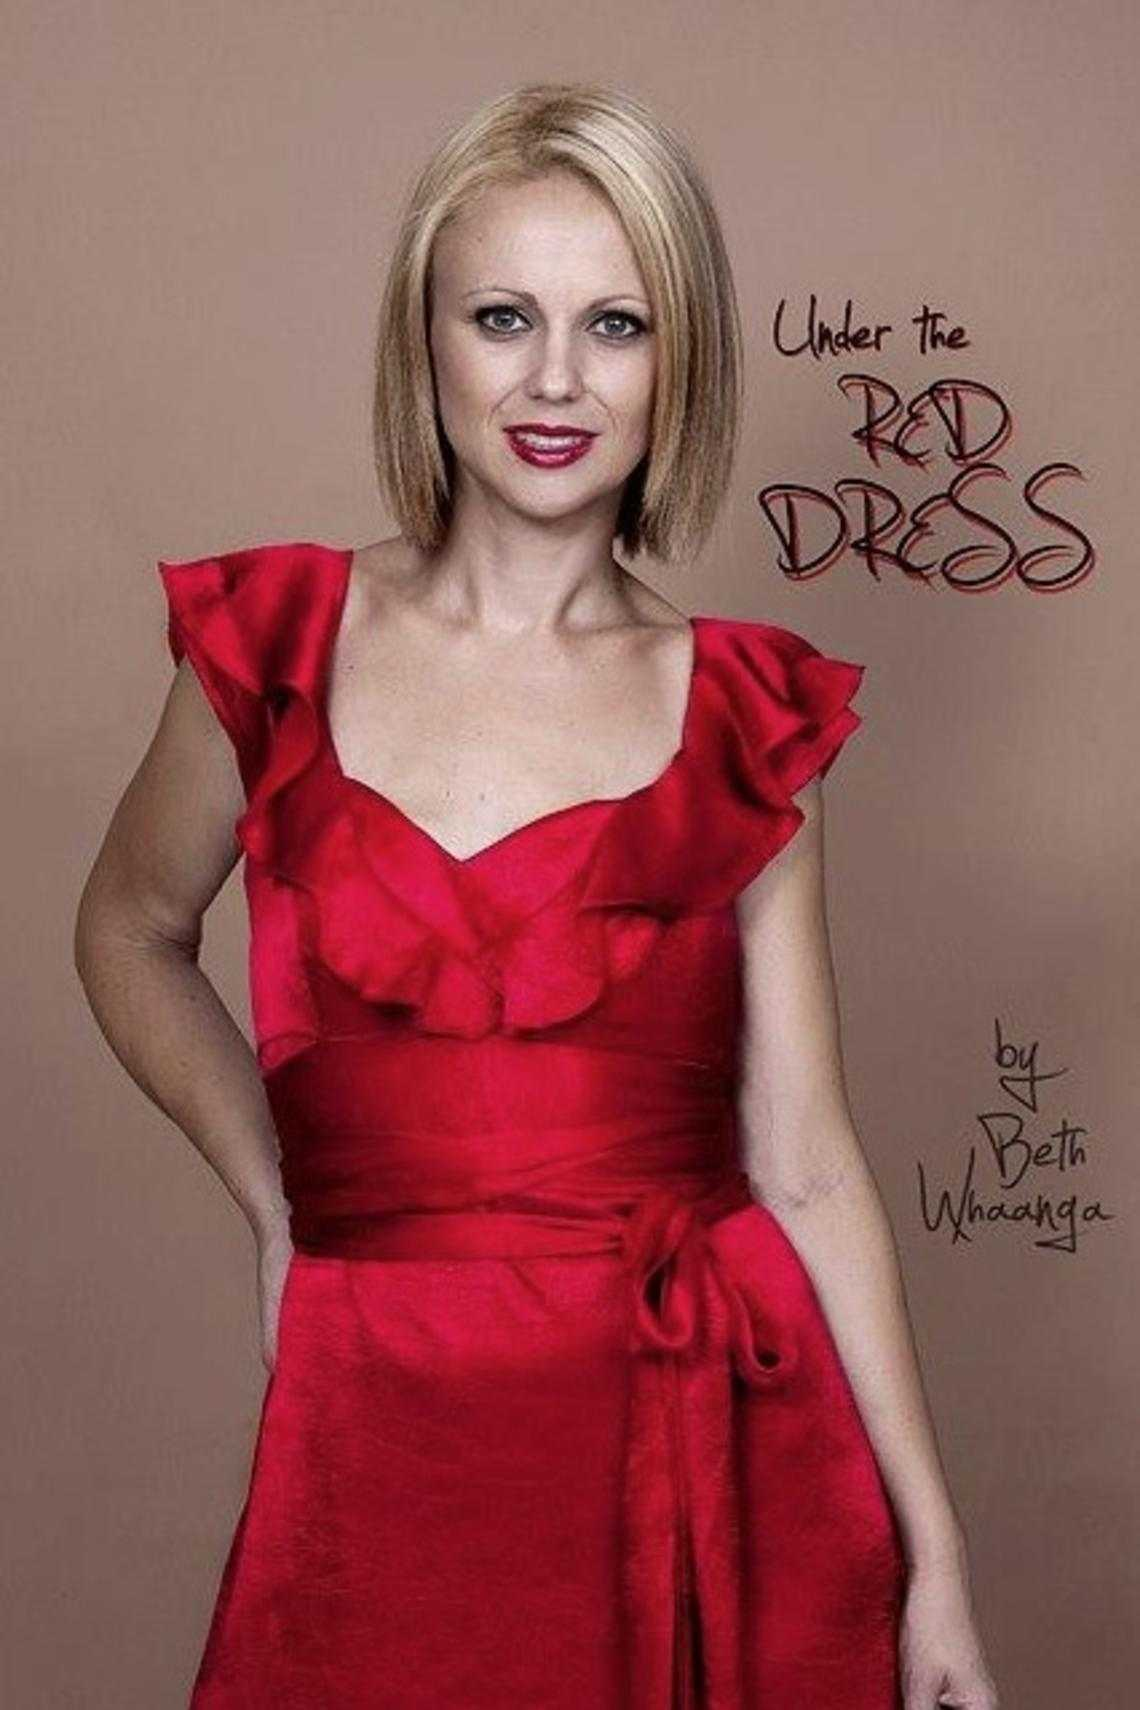 Beth Whaanga mit rotem Kleid in «Under the Red Dress»-Kampagne